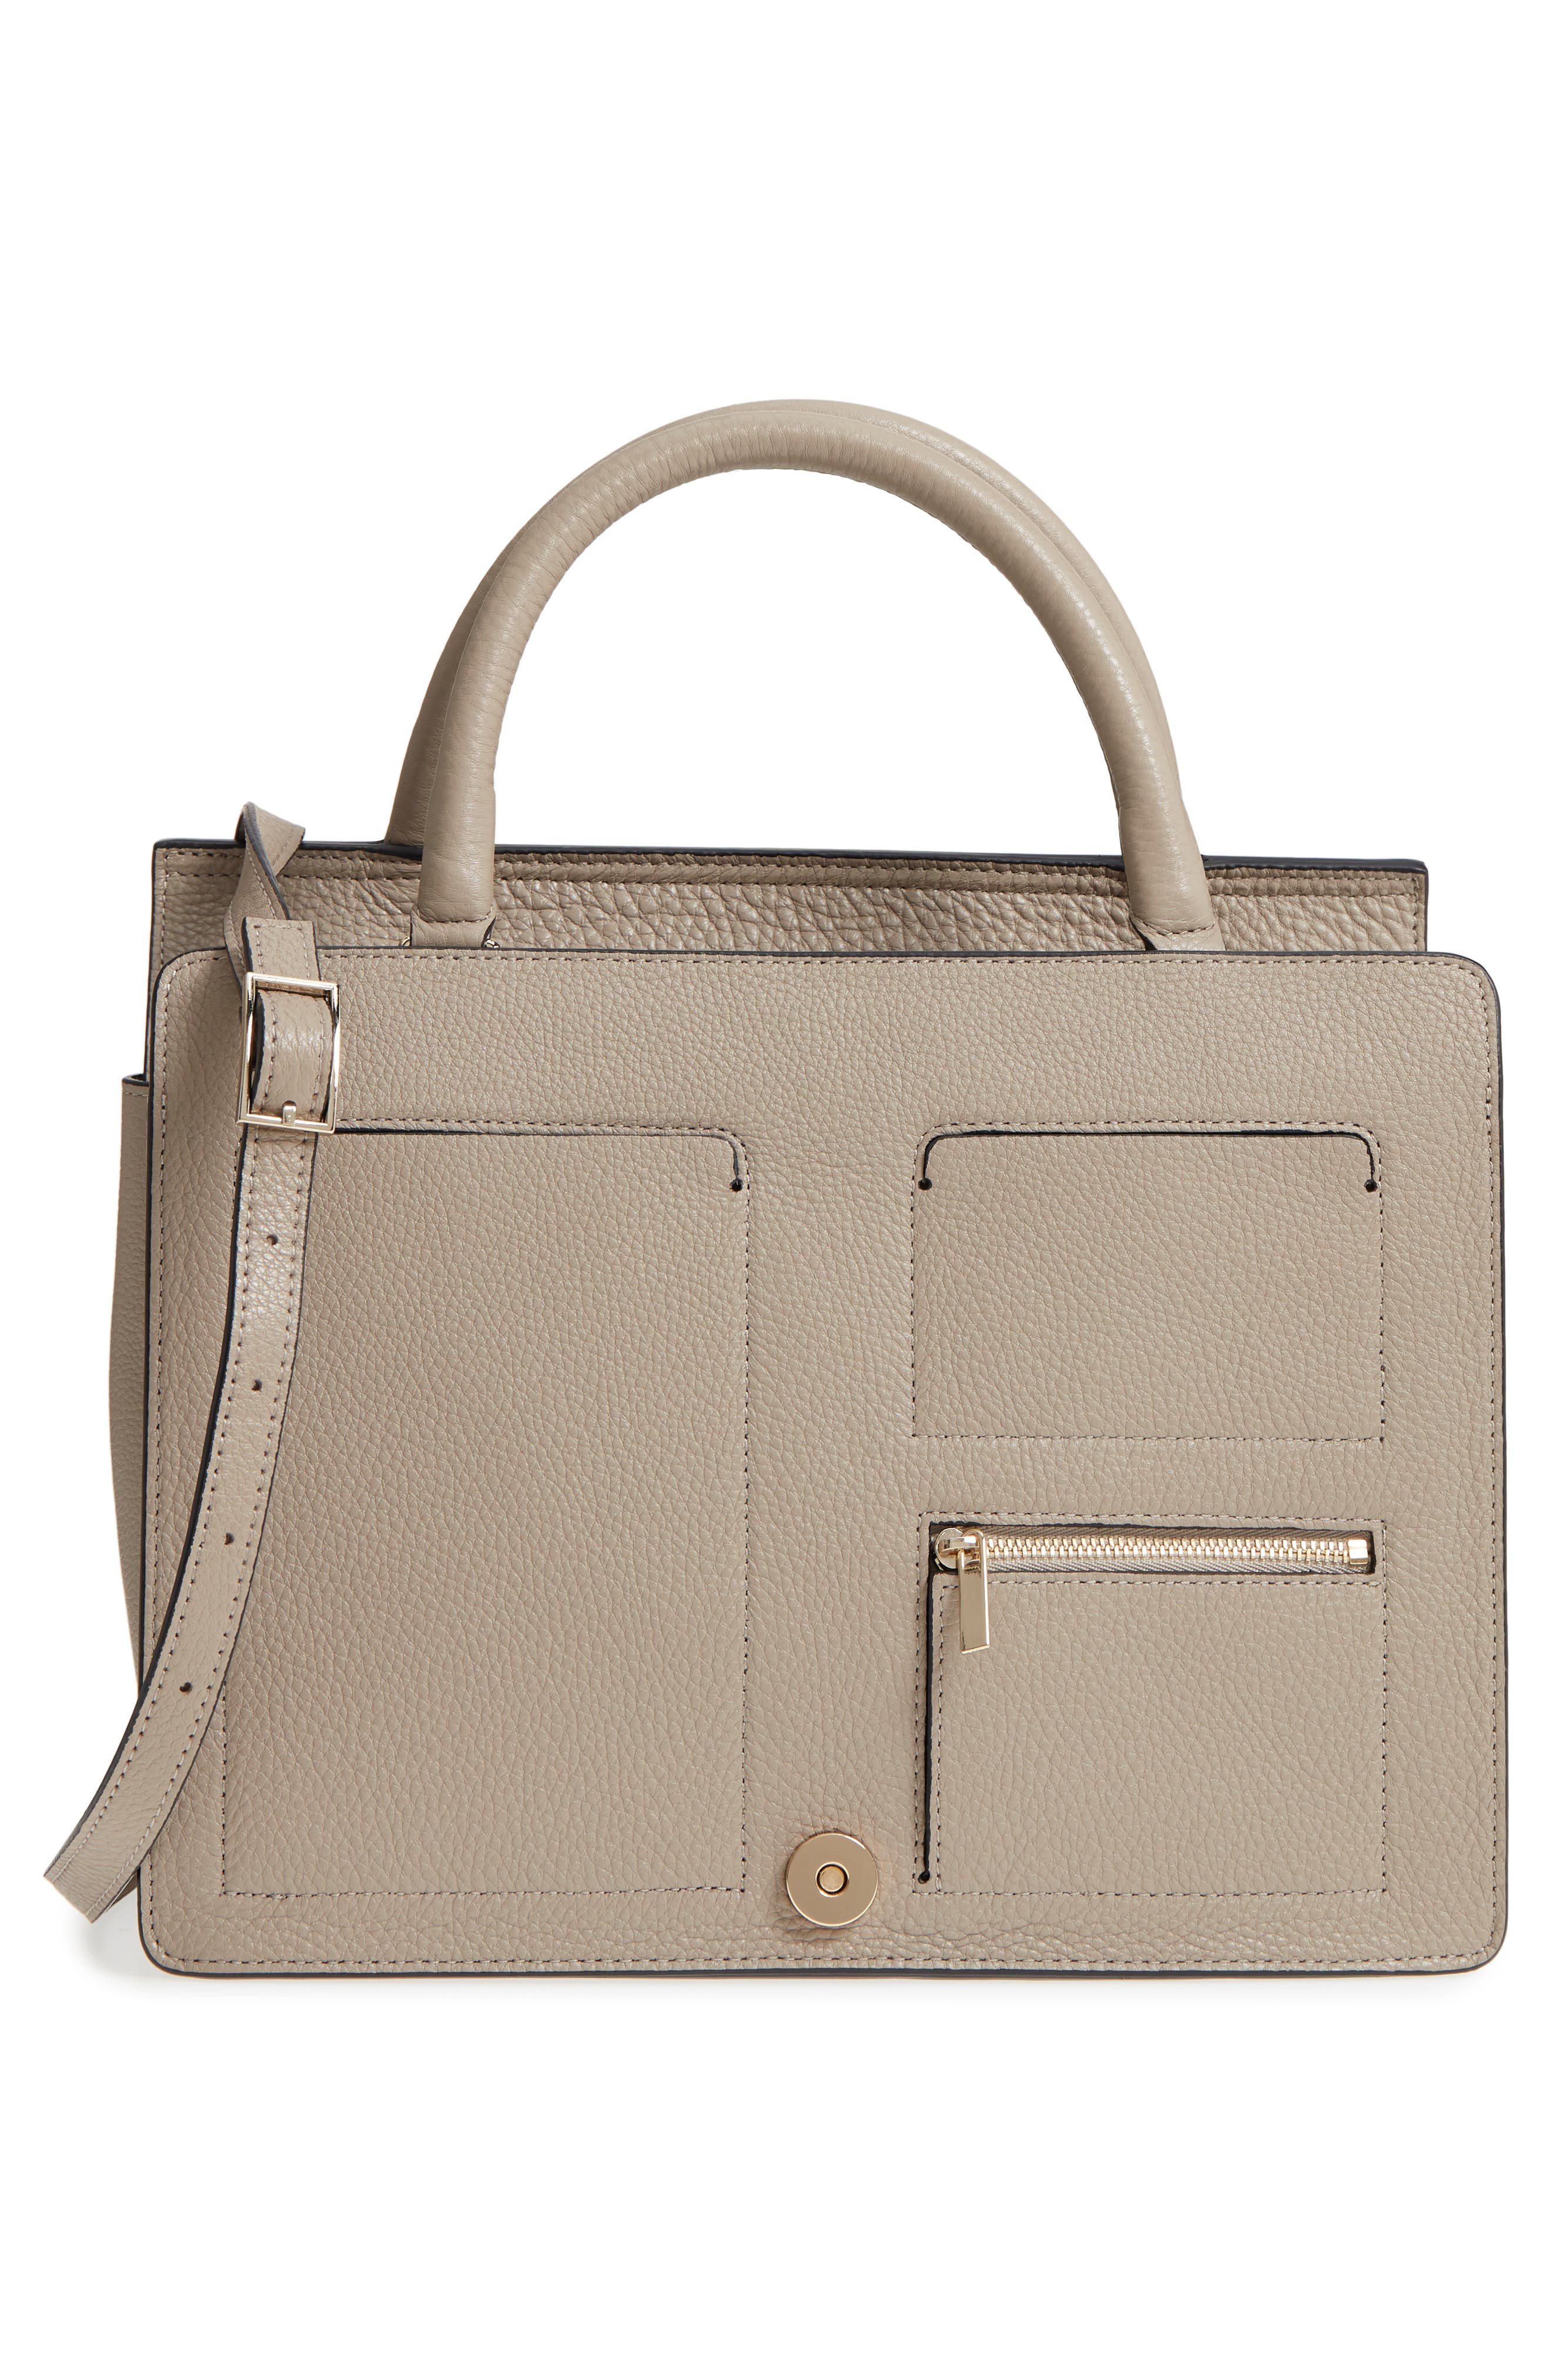 Prism Convertible Satchel,                             Alternate thumbnail 3, color,                             TAUPE